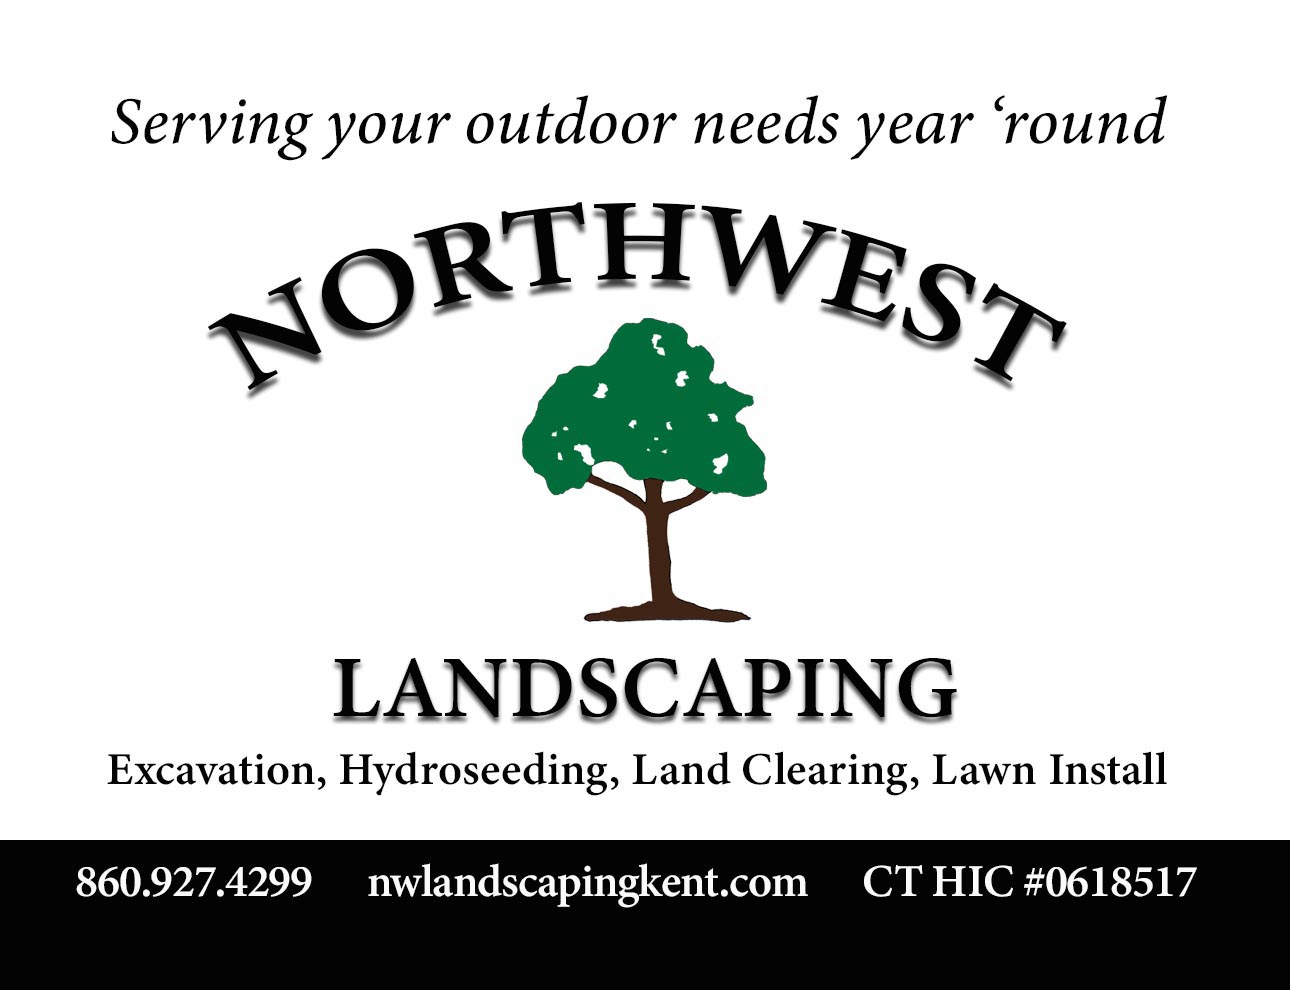 Northwest Landscaping 4 x 3 2109 Ad FINAL APPROVED.jpg